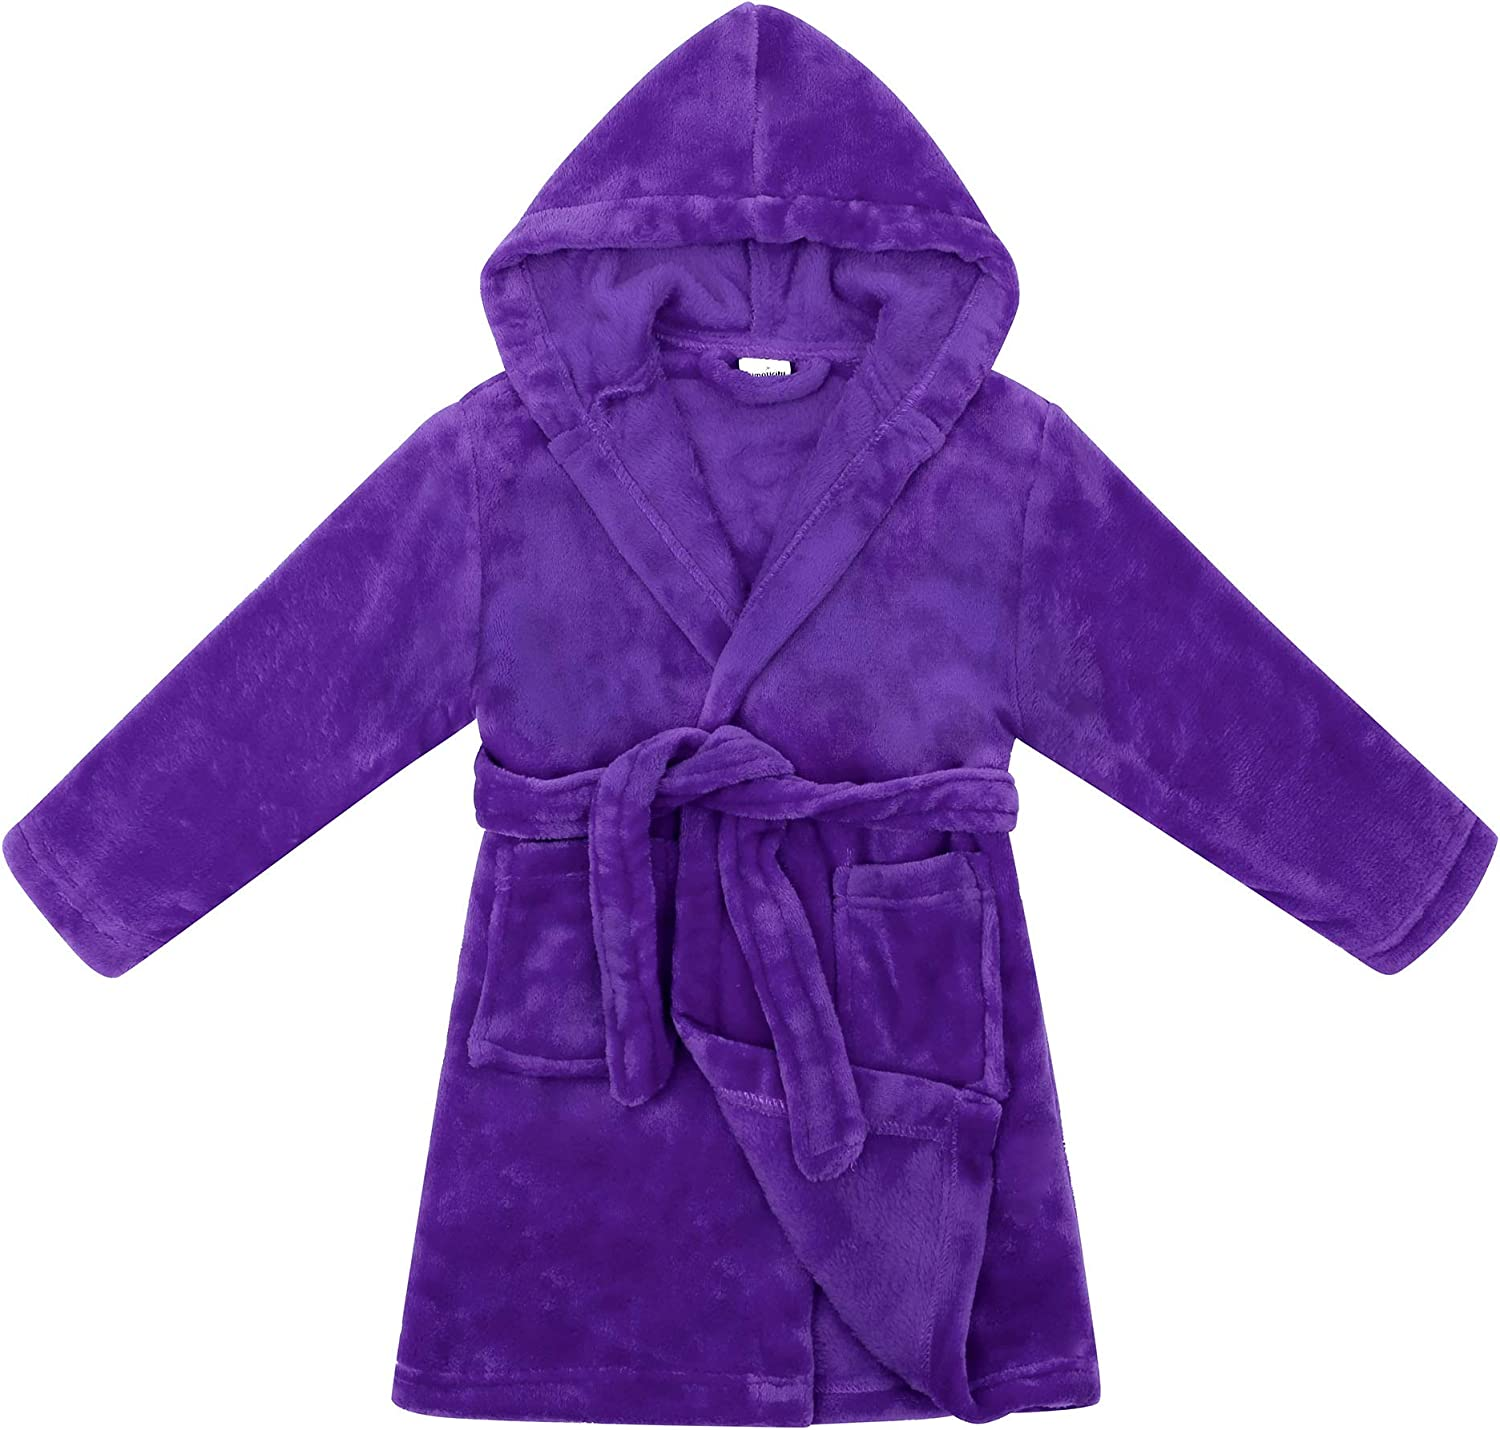 Boys Girls Bathrobes,Plush Soft Flannel Bathrobes Hooded Sleepwear for Kids